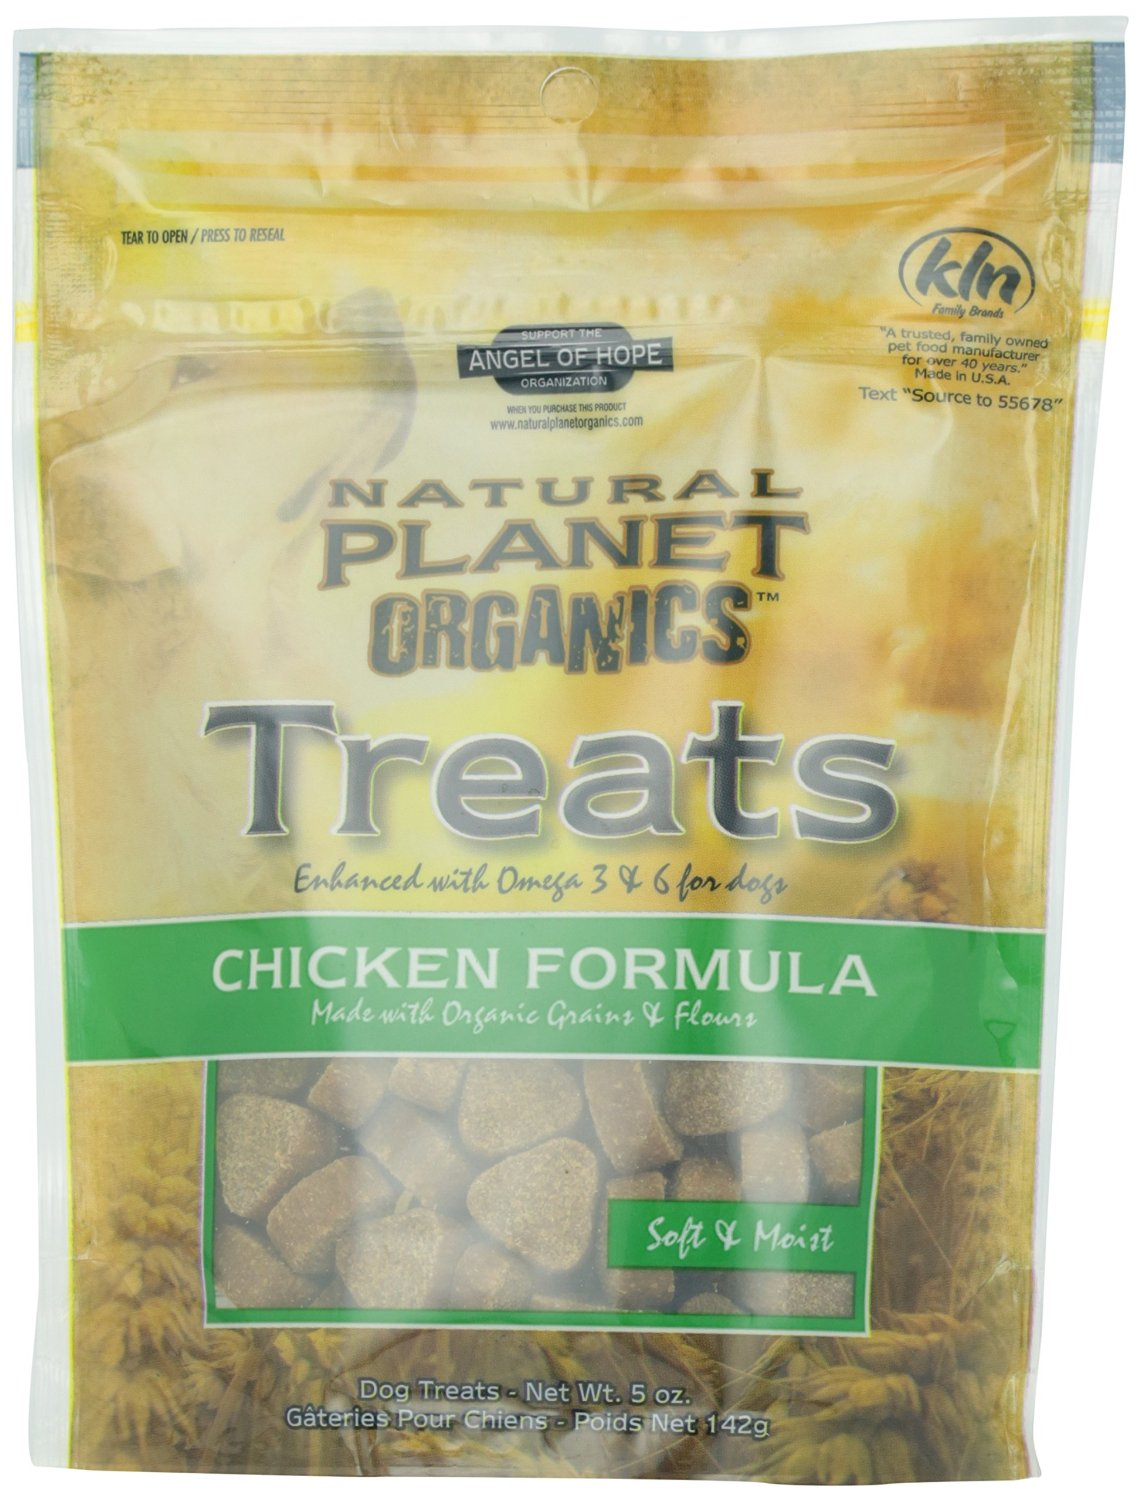 Natural Planet Organics Dog Treats